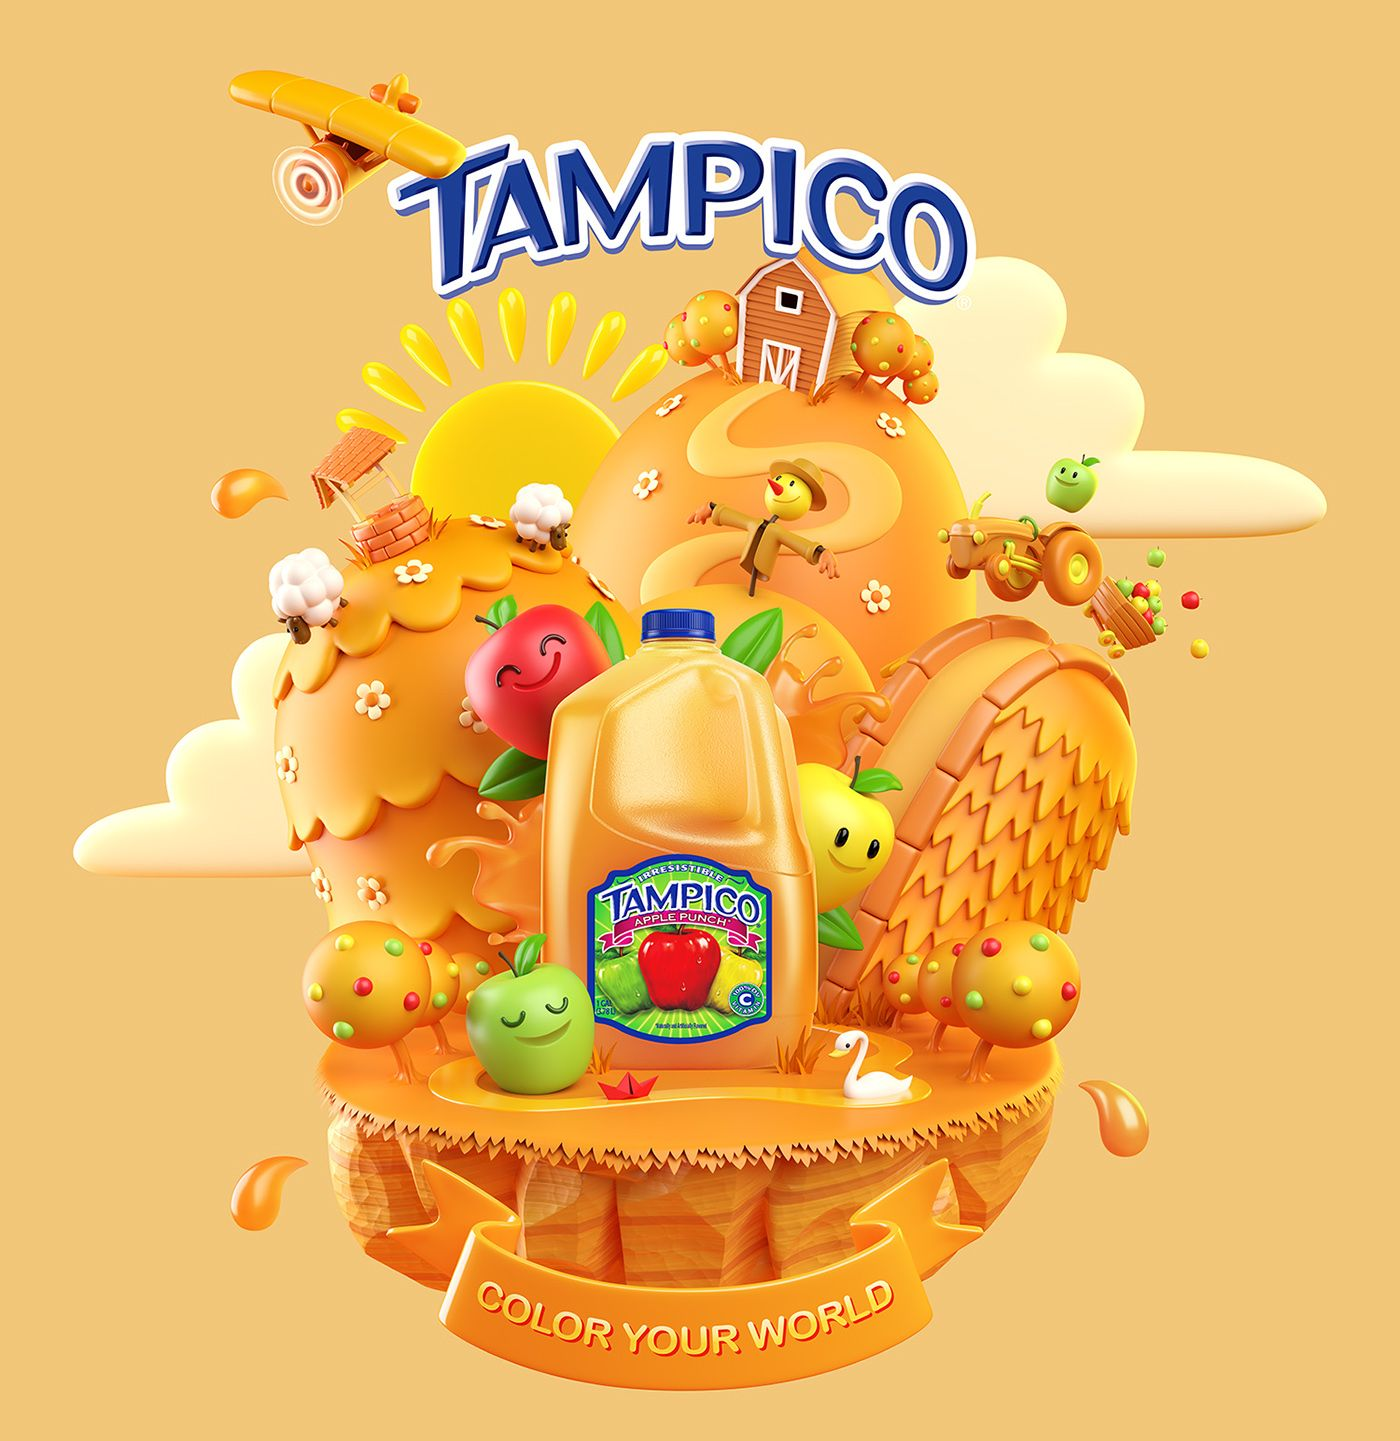 Tampico - Color Your World on Behance | Tampico, Creative ...